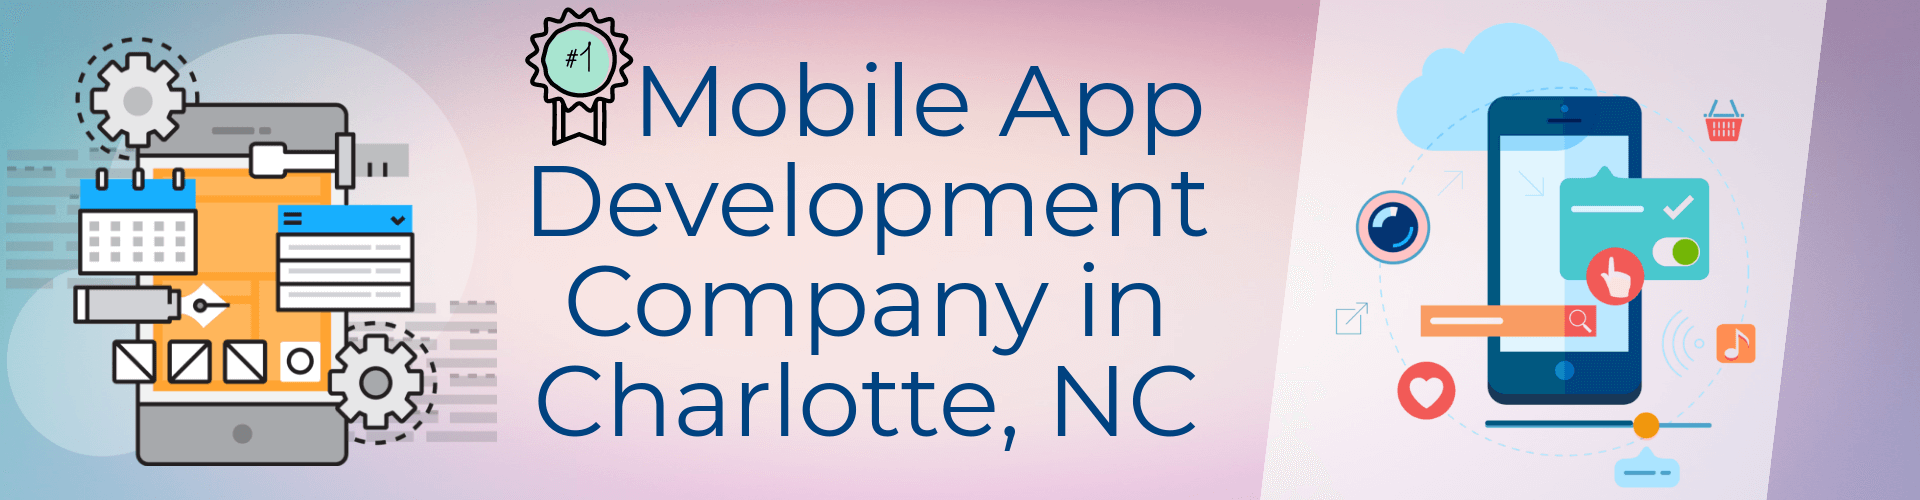 mobile app development company charlotte